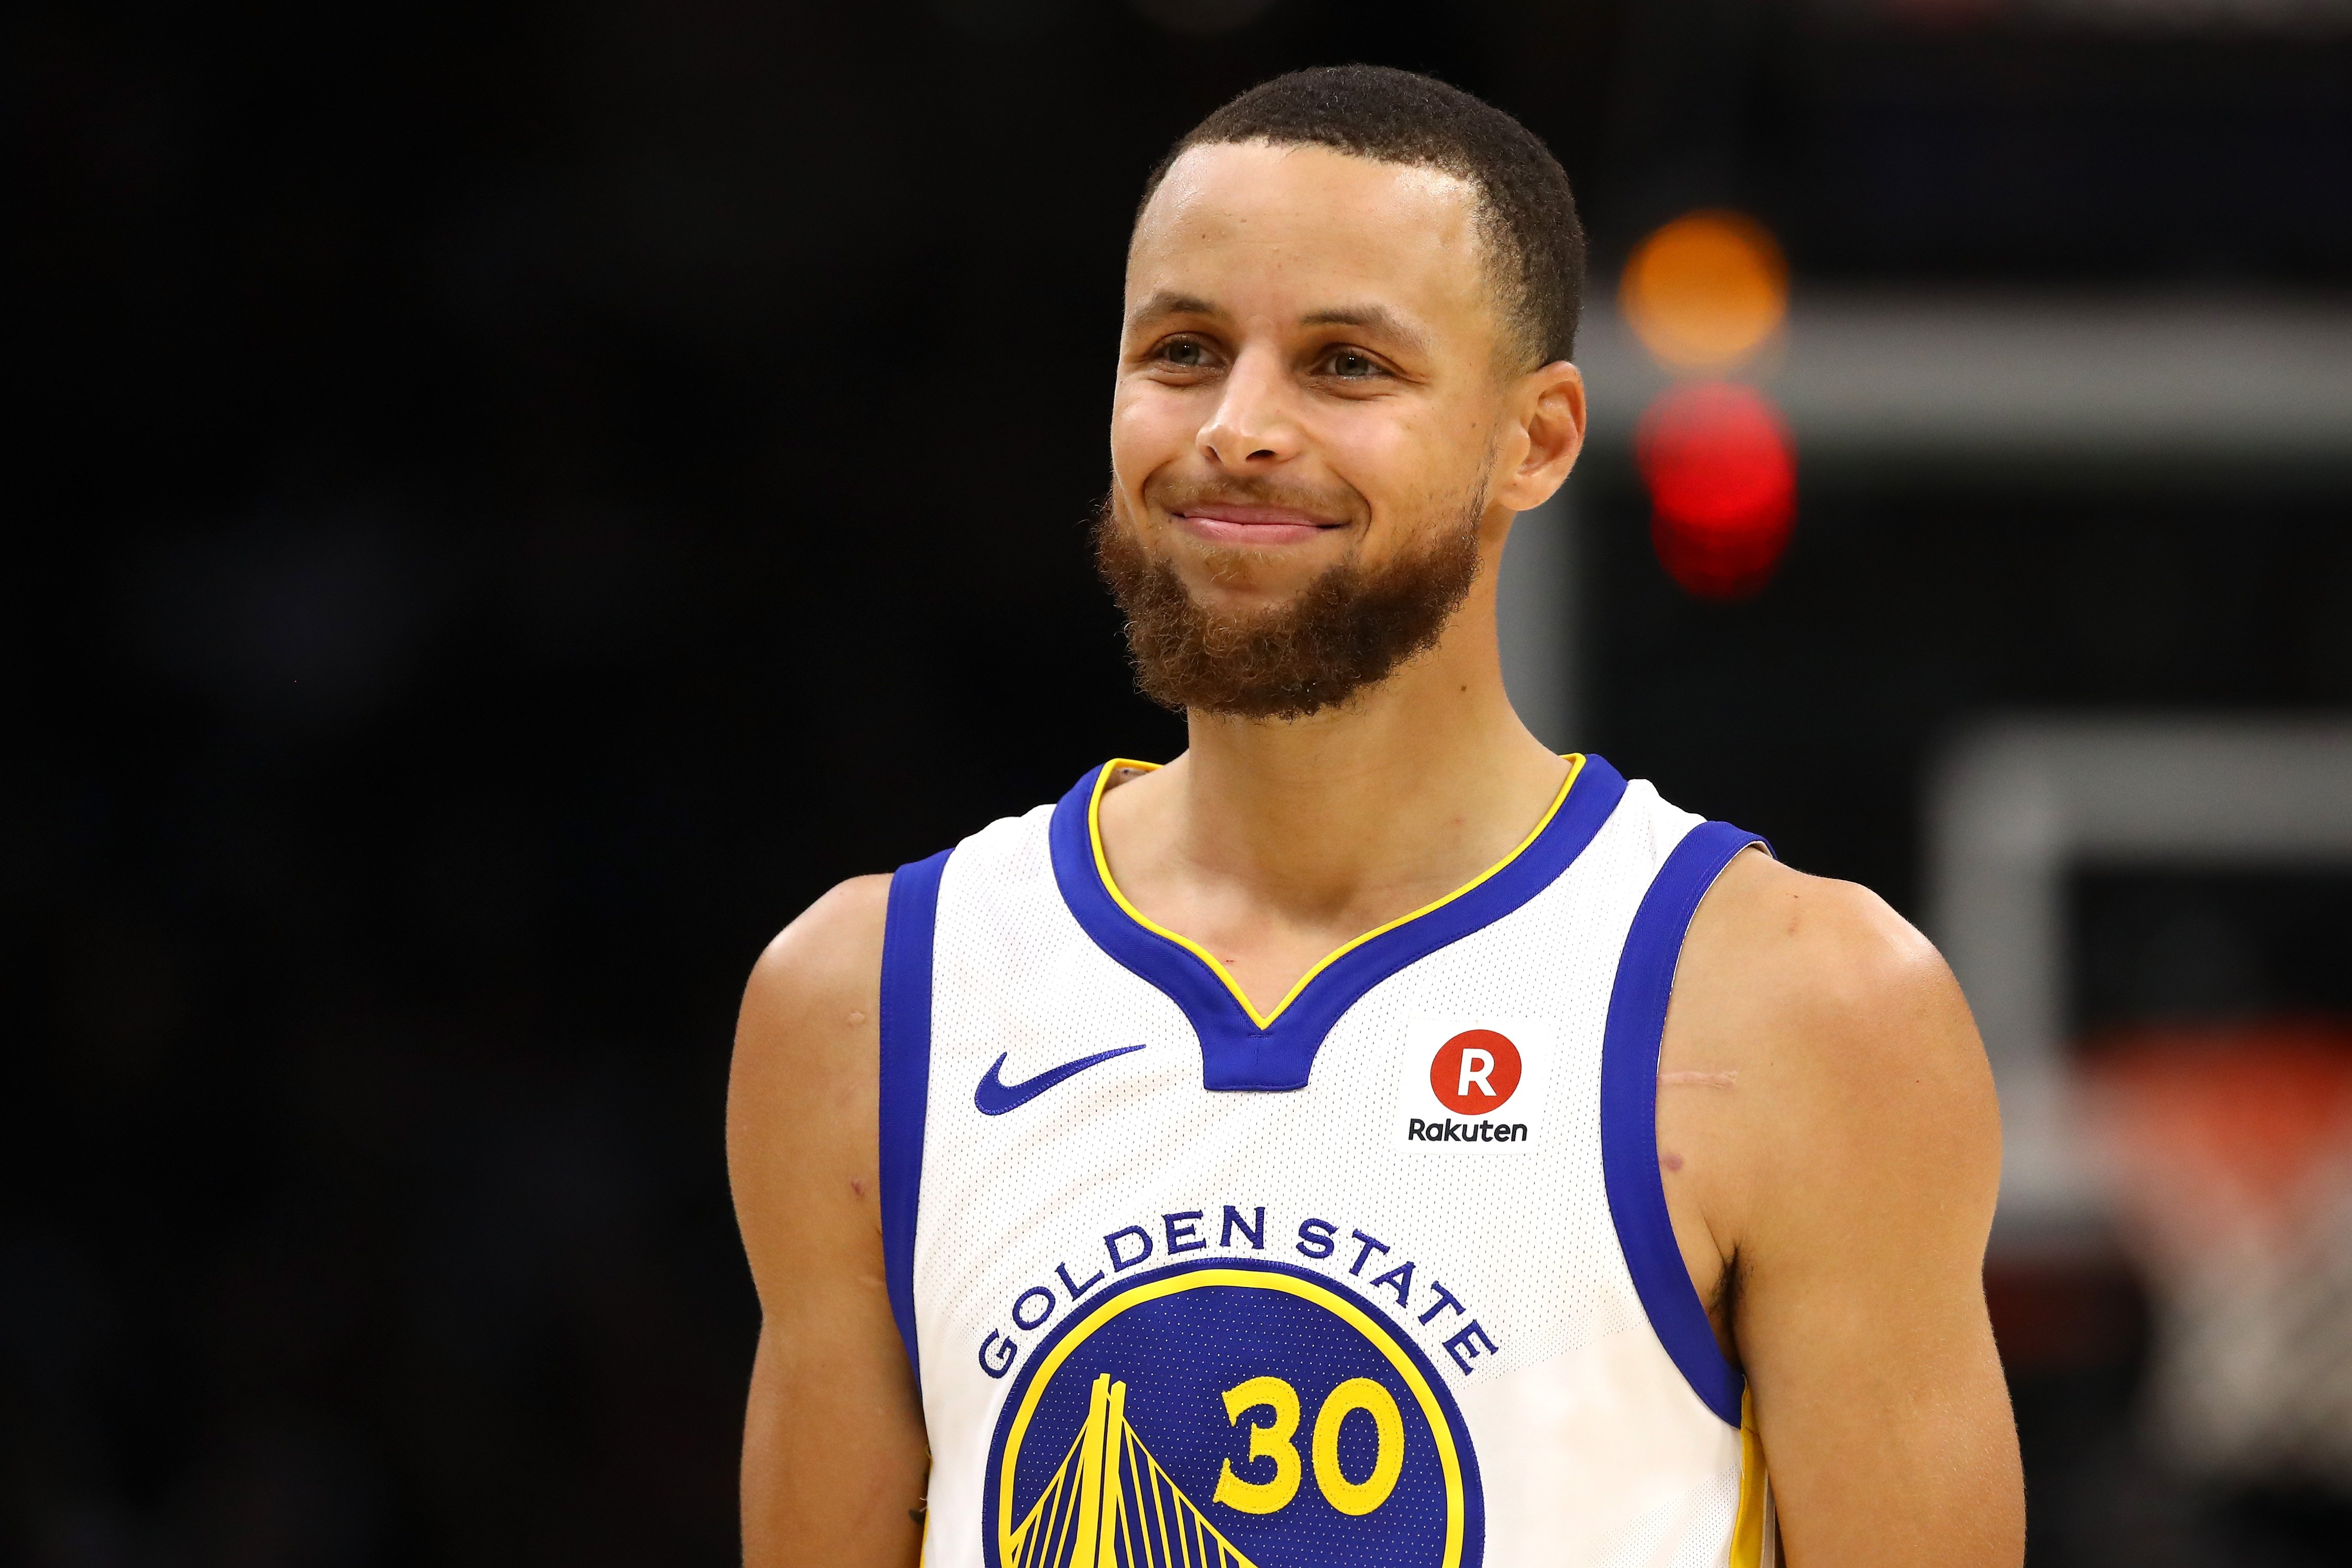 Stephen Curry during Game 4 against the Cleveland Cavaliers at the 2018 NBA Finals at Quicken Loans Arena on June 8, 2018 in Cleveland, Ohio.| Source: Getty Images